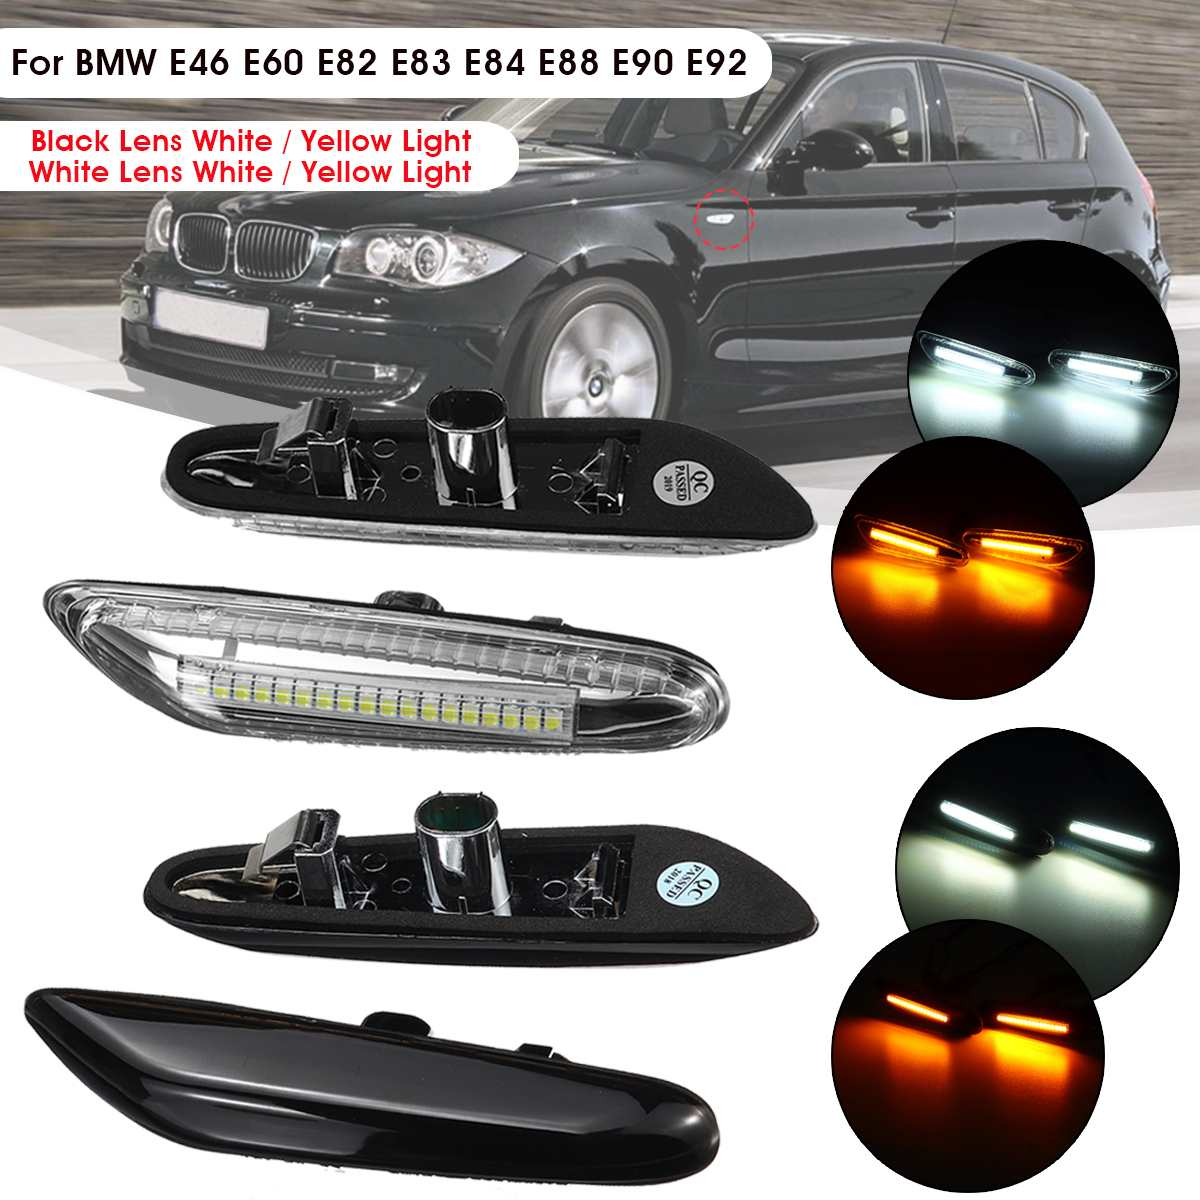 2pcs Car LED Side Marker Lights Repeater Turn Signal Indicator Lamp for BMW E46 E60 E82 E88 E90 E92 E93 image